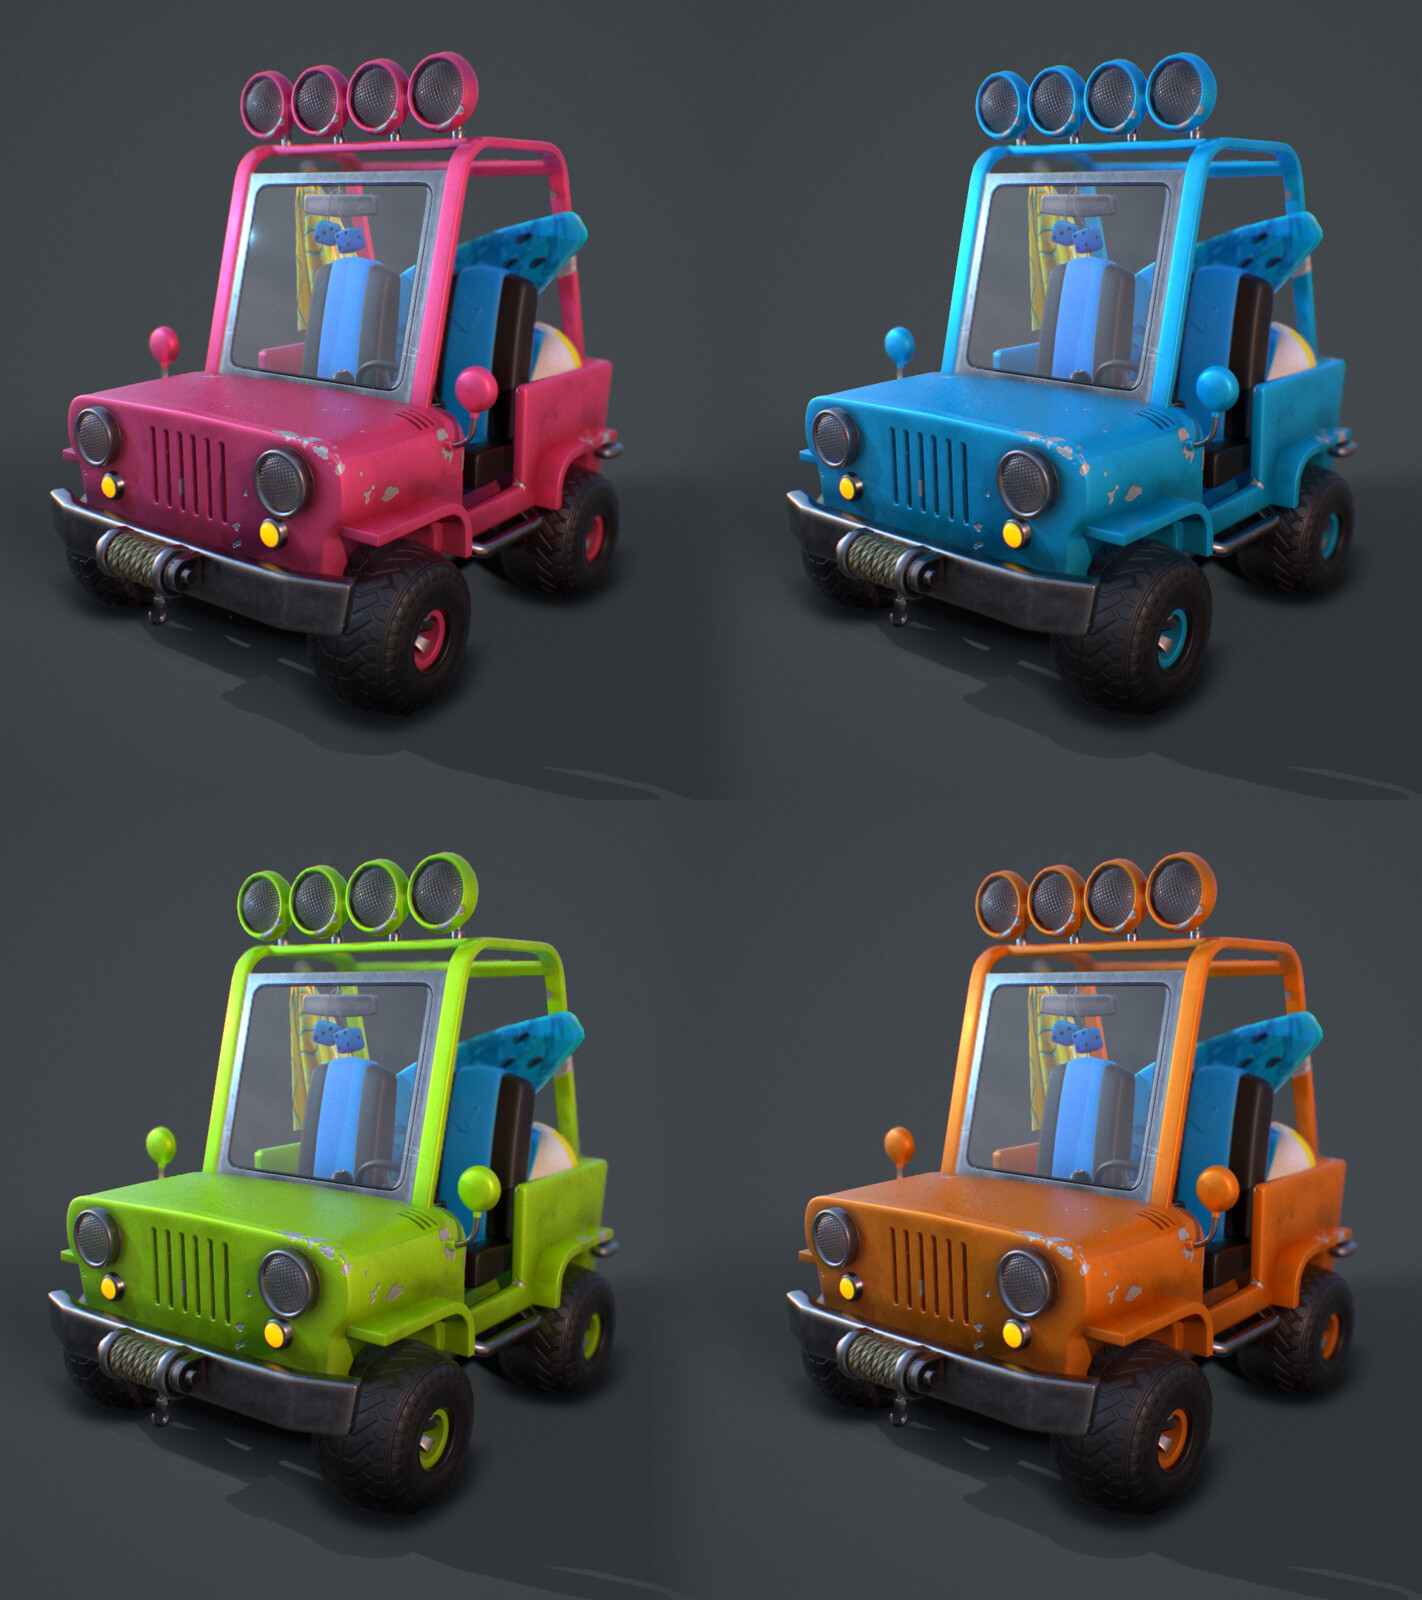 Beach Jeep / Color Tests